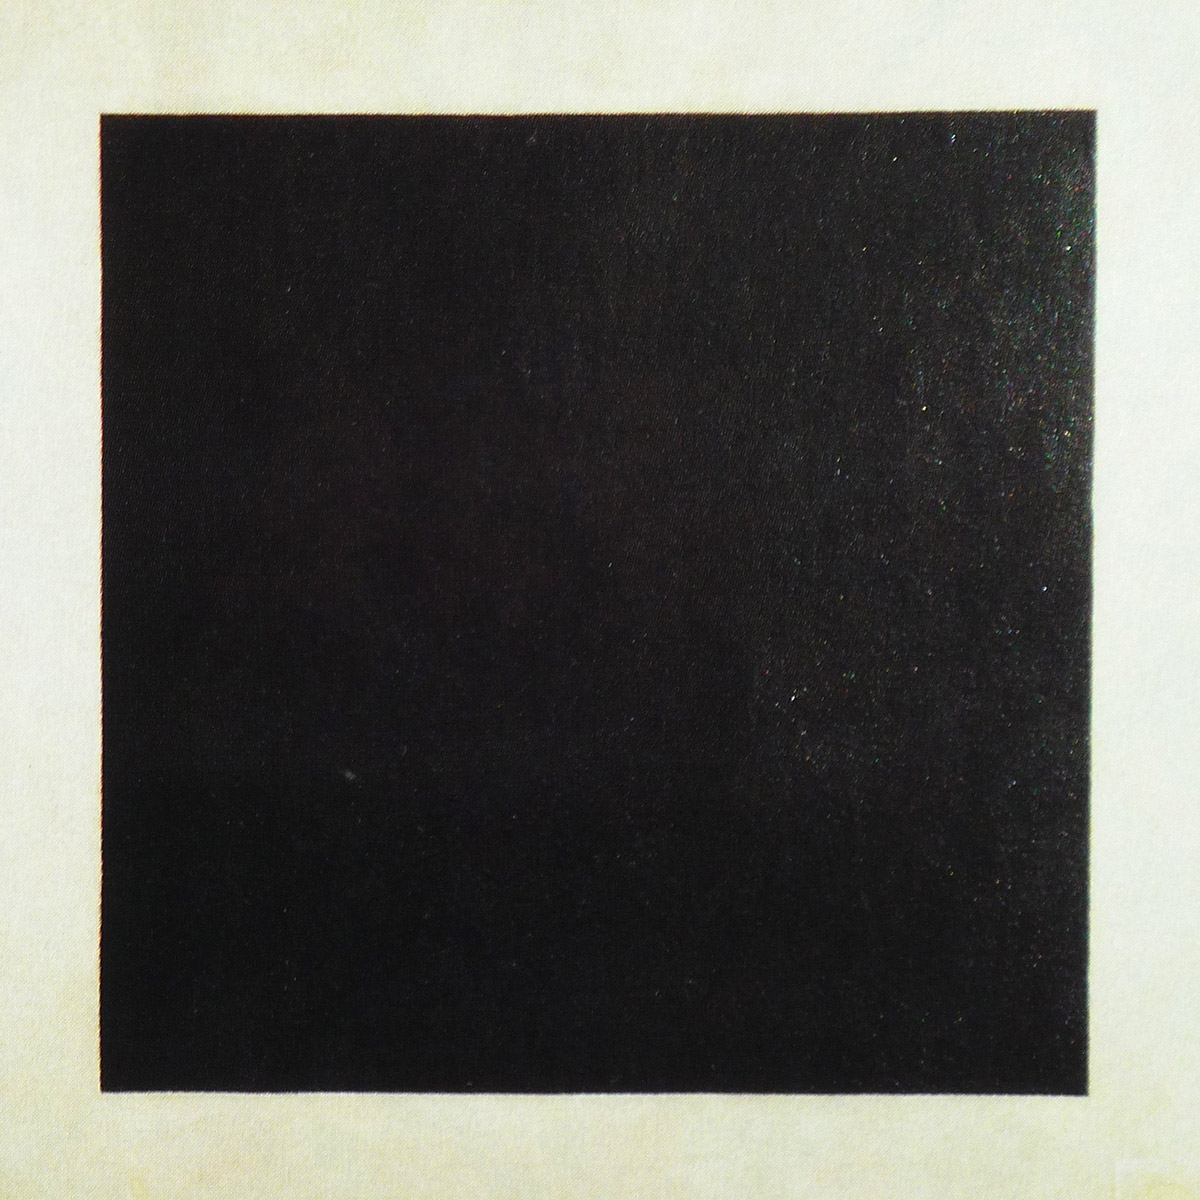 Black square on a white background, work by the Russian Kasimir Malevich,